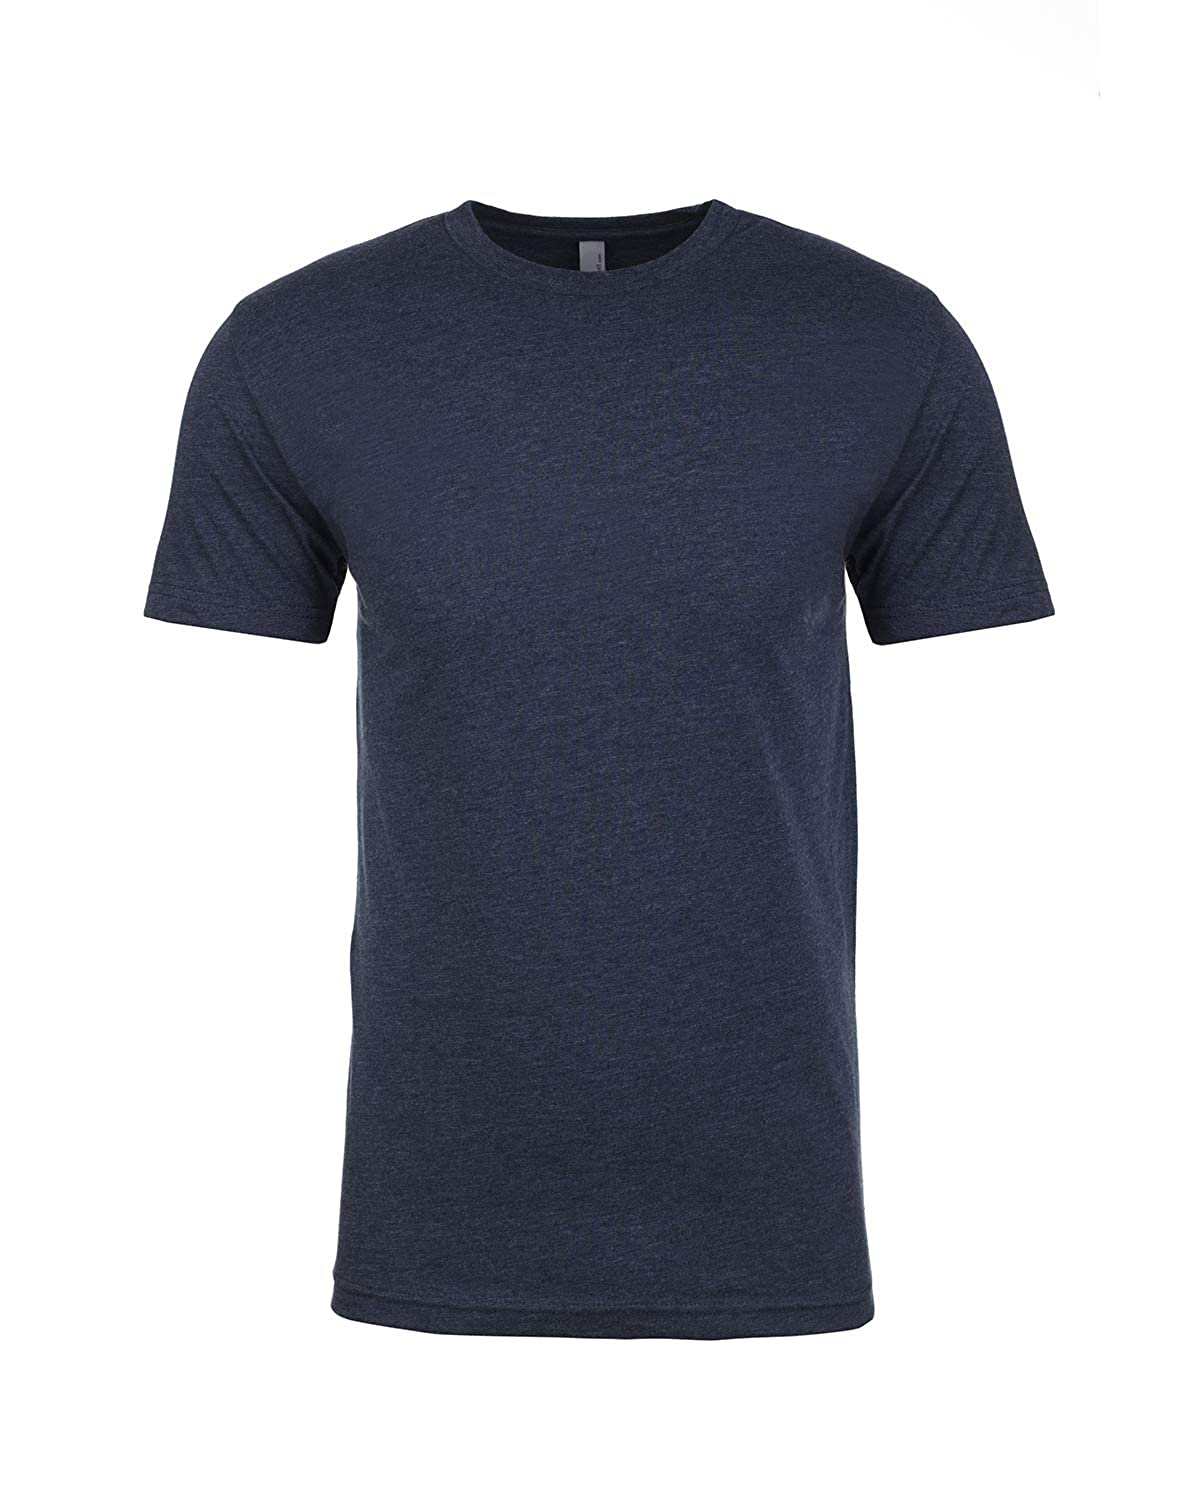 Next Level 6210 Mens Mens CVC Tee